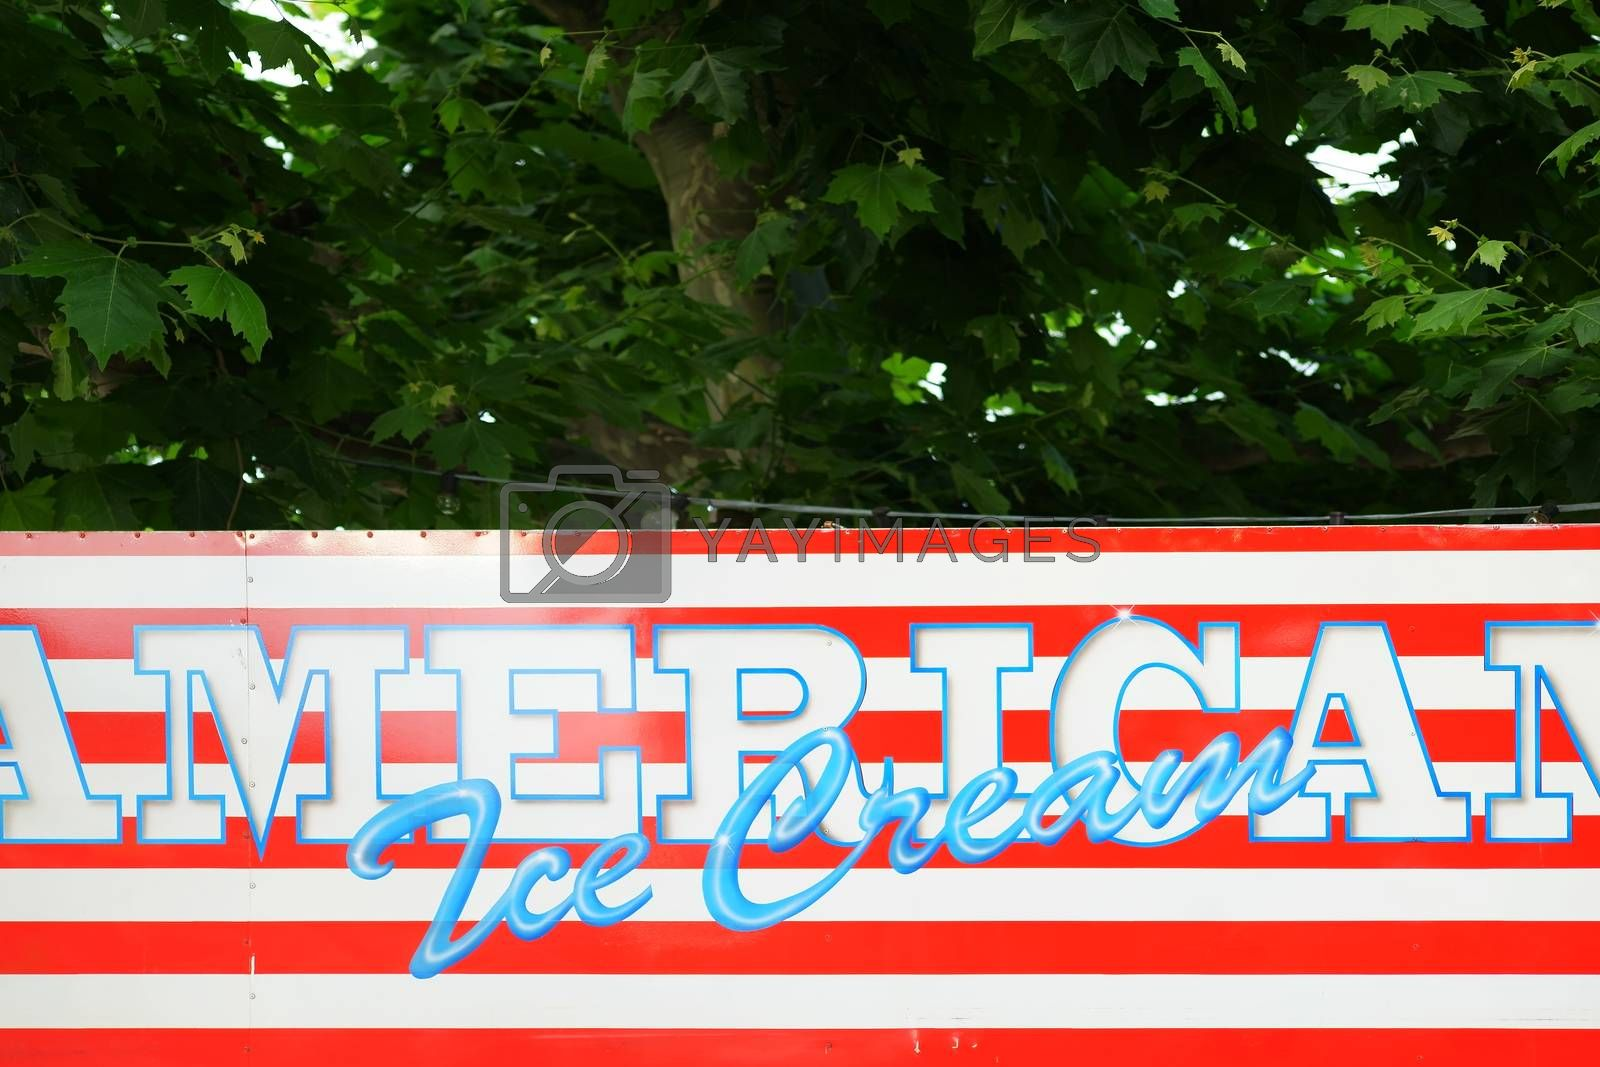 The upper edge of an ice seller for American ice cream in the colors of the American flag.